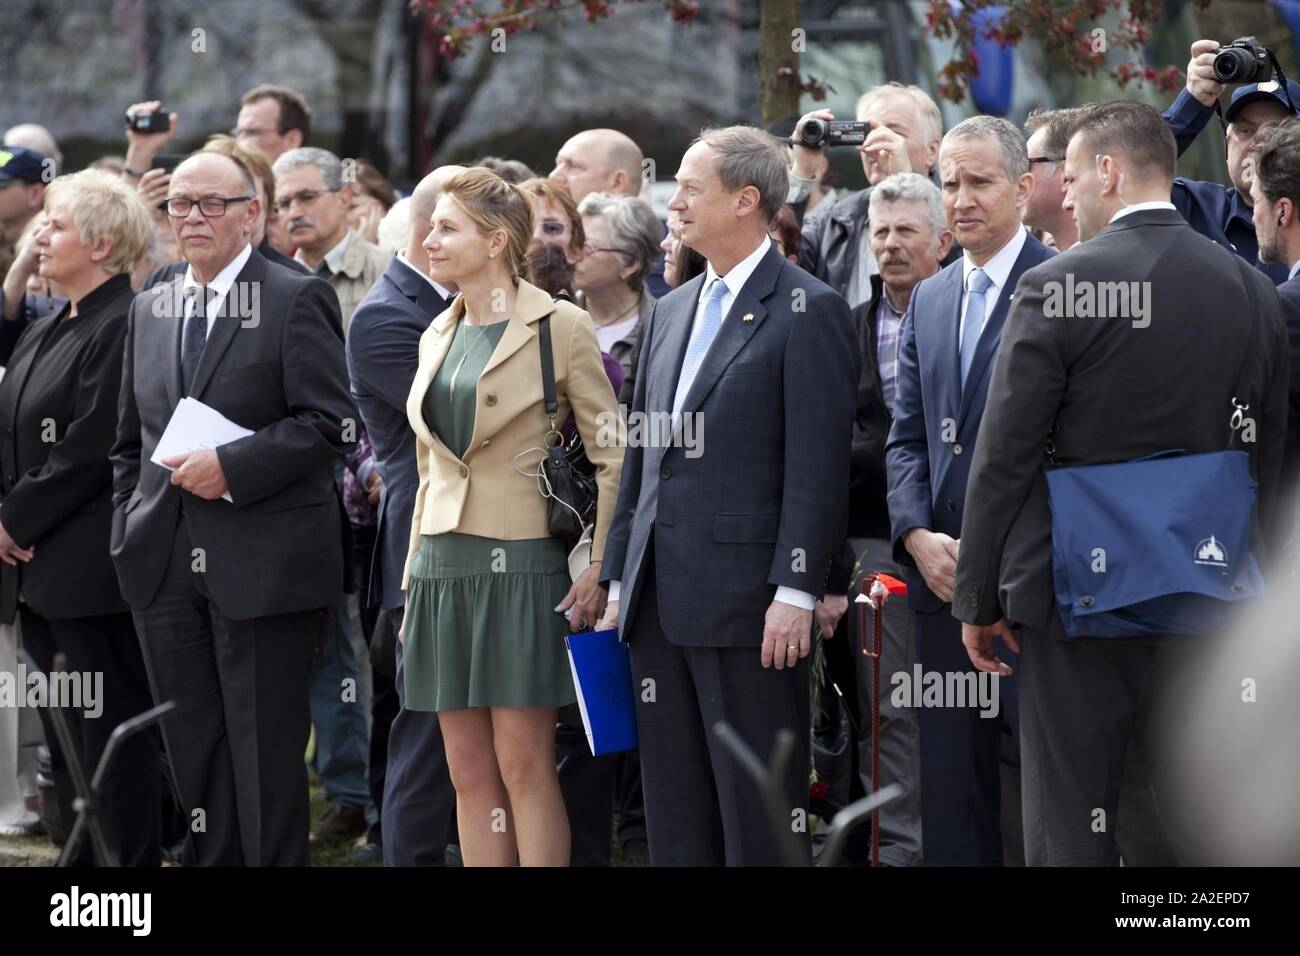 Elbe Day April 25, 2015 in Torgau Stock Photo